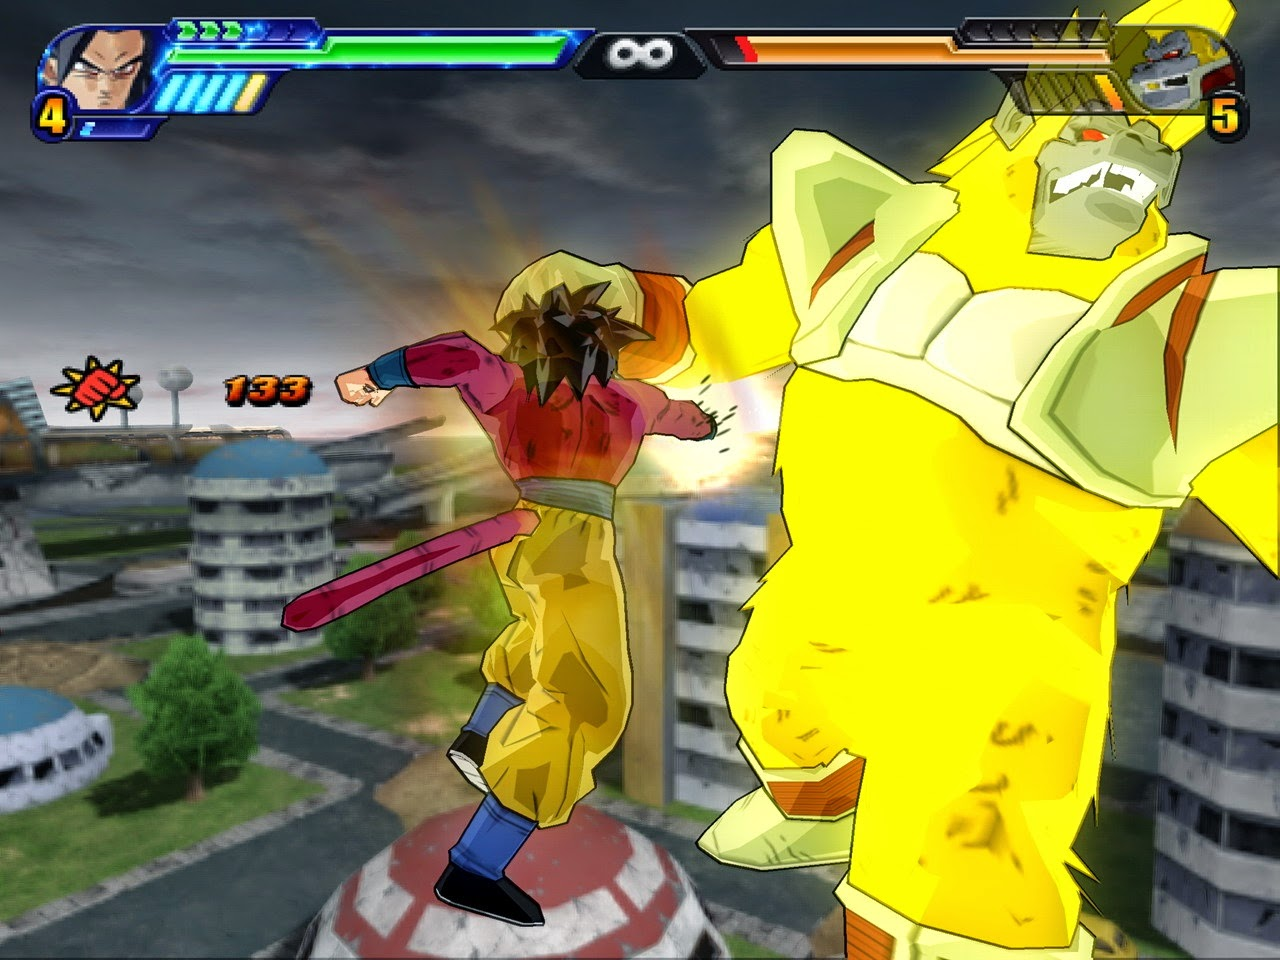 Dragon ball z mugen edition 2011 download free full games.